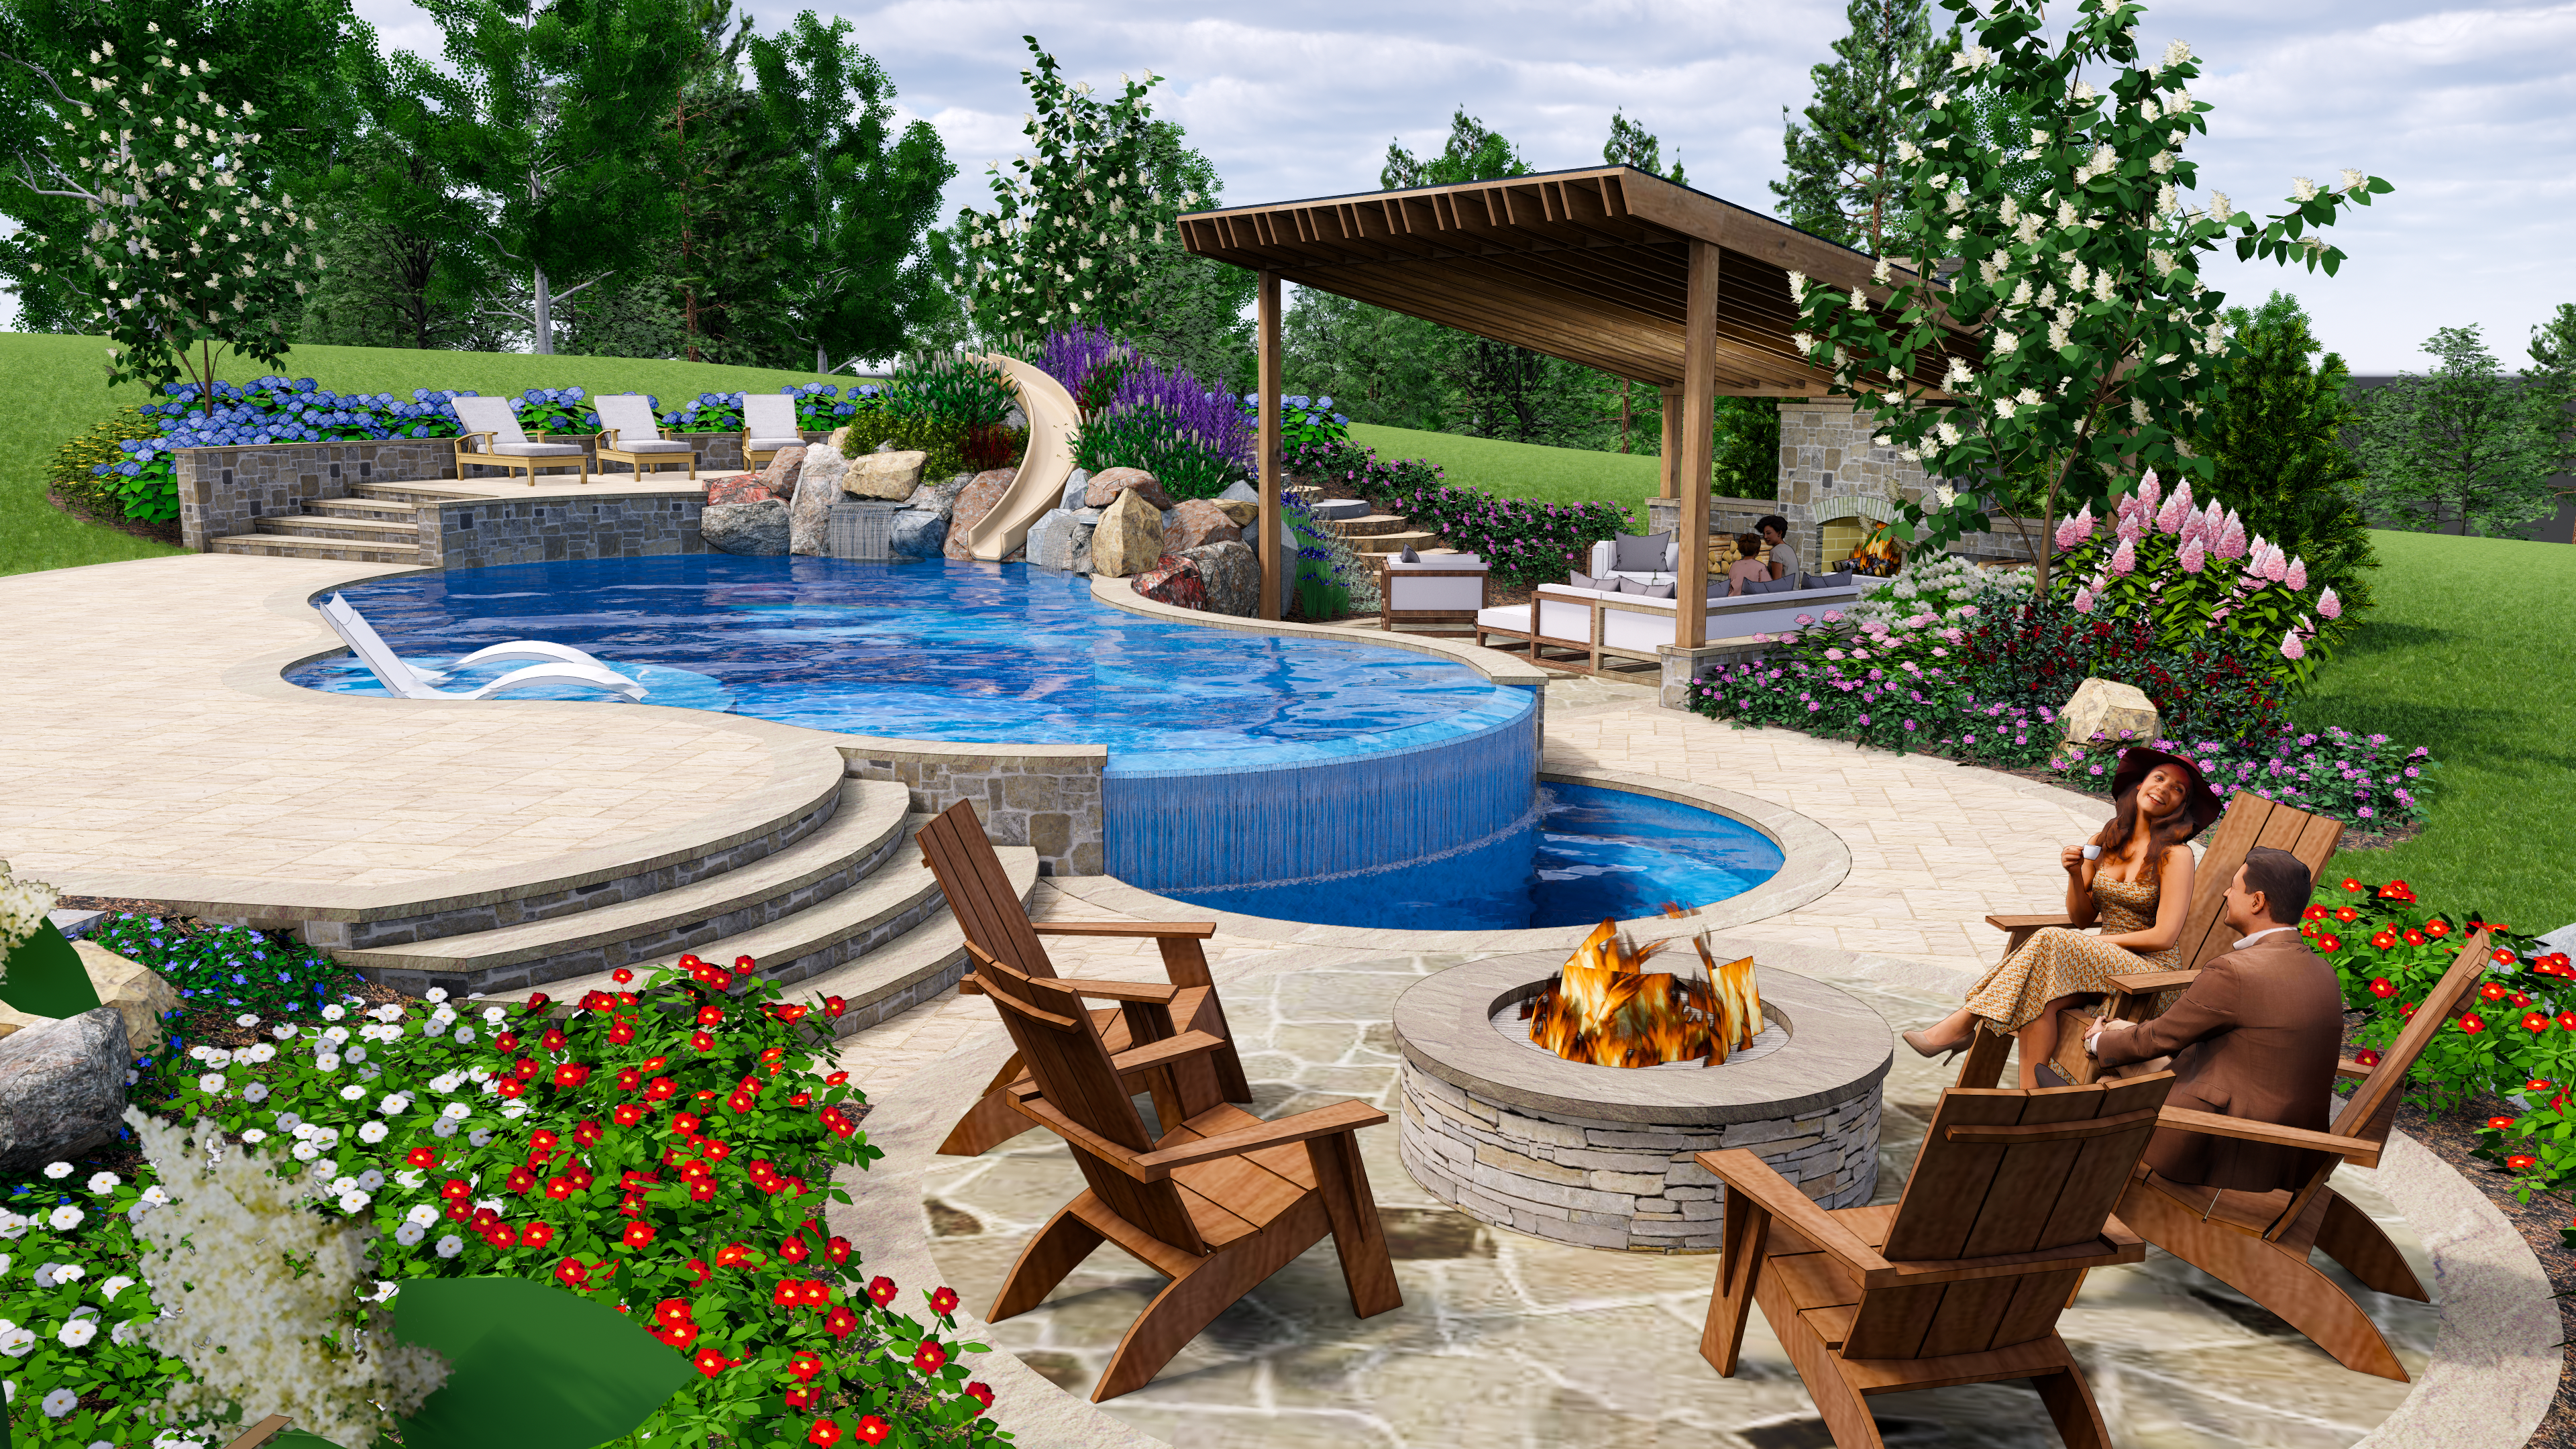 Building A Pool On A Slope Design Tips For Great Falls Va Yards With Hills